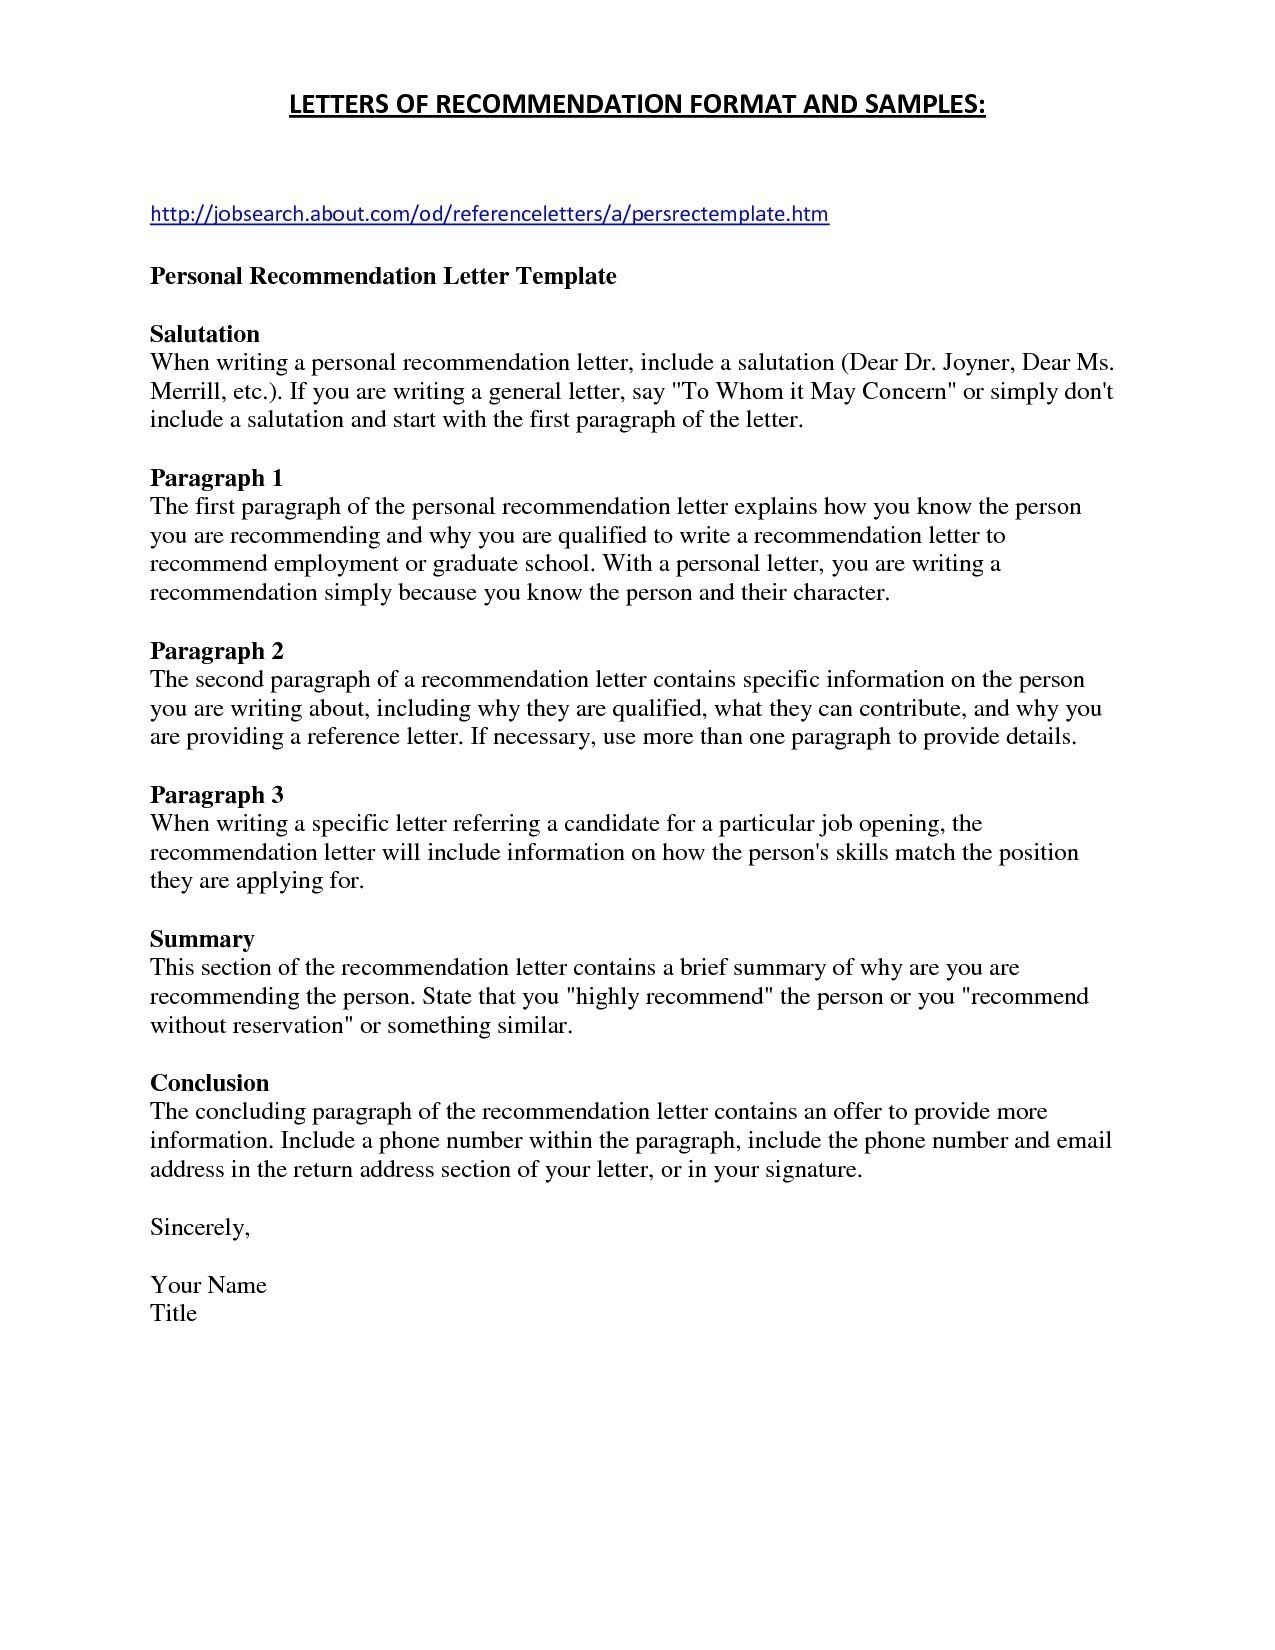 Letter Of Intent Template - Letter Intent Job Example Best Letter Intent Sample Job New Non